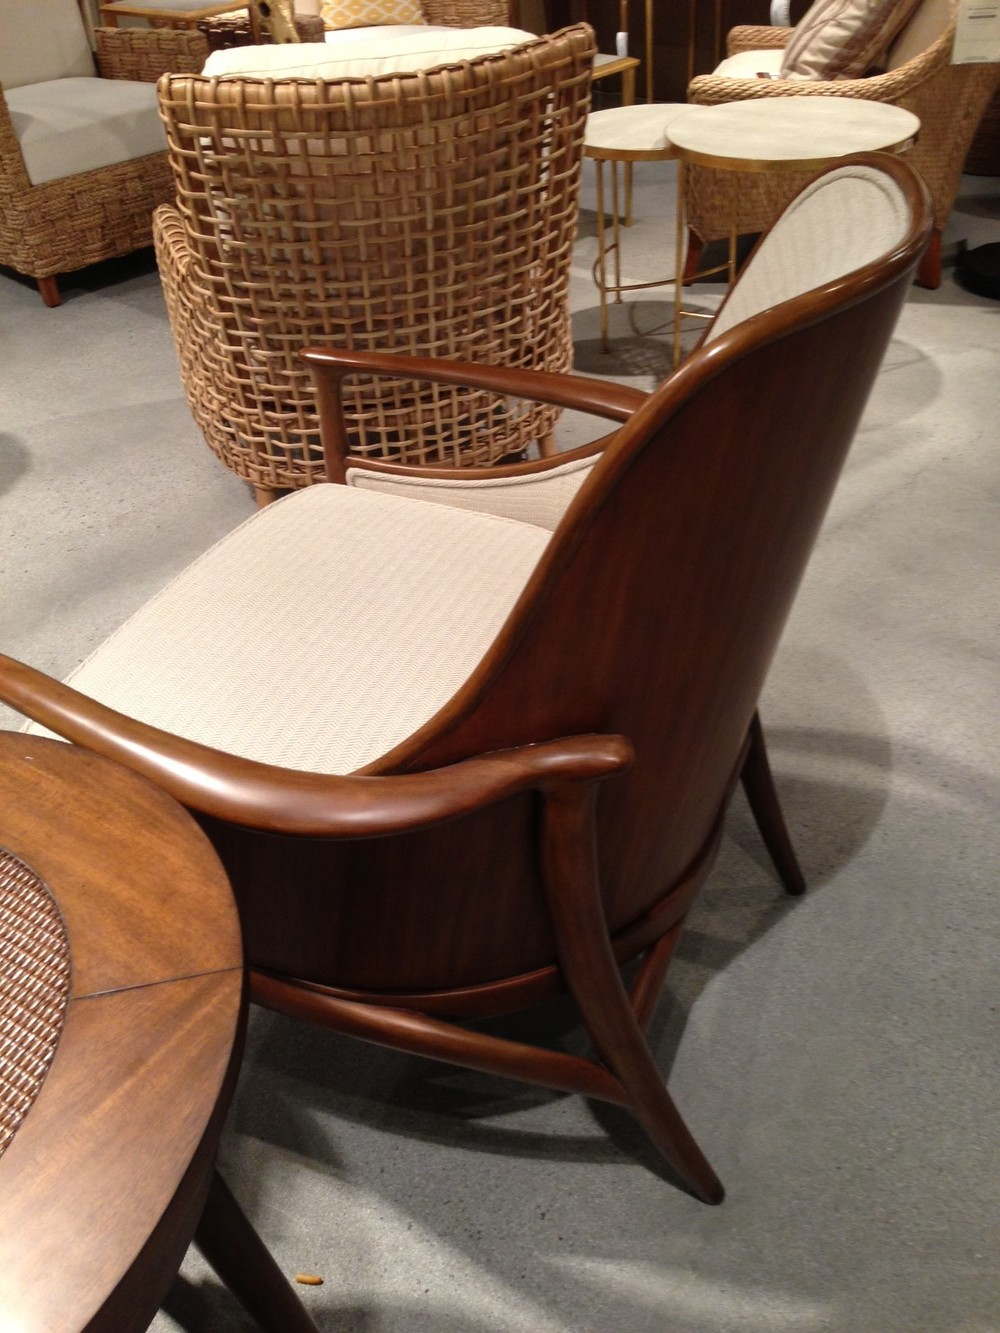 Chair by Palacek. | #LVmkt, best, home, decor, furniture, interior design